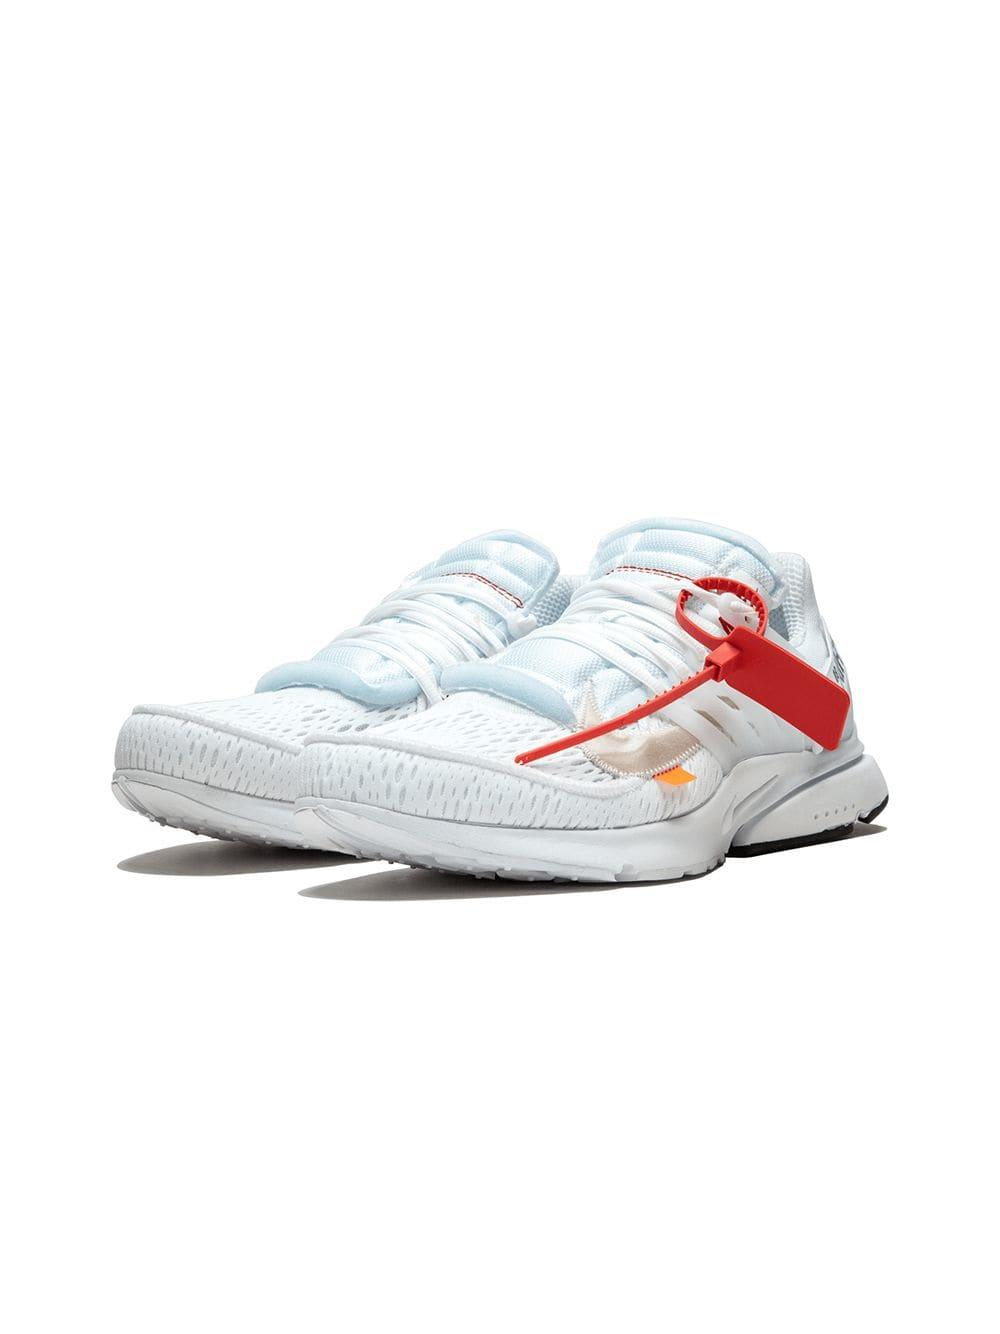 e356cc11ced3 Lyst - Nike X Off-white The 10   Air Presto Sneakers in White for Men